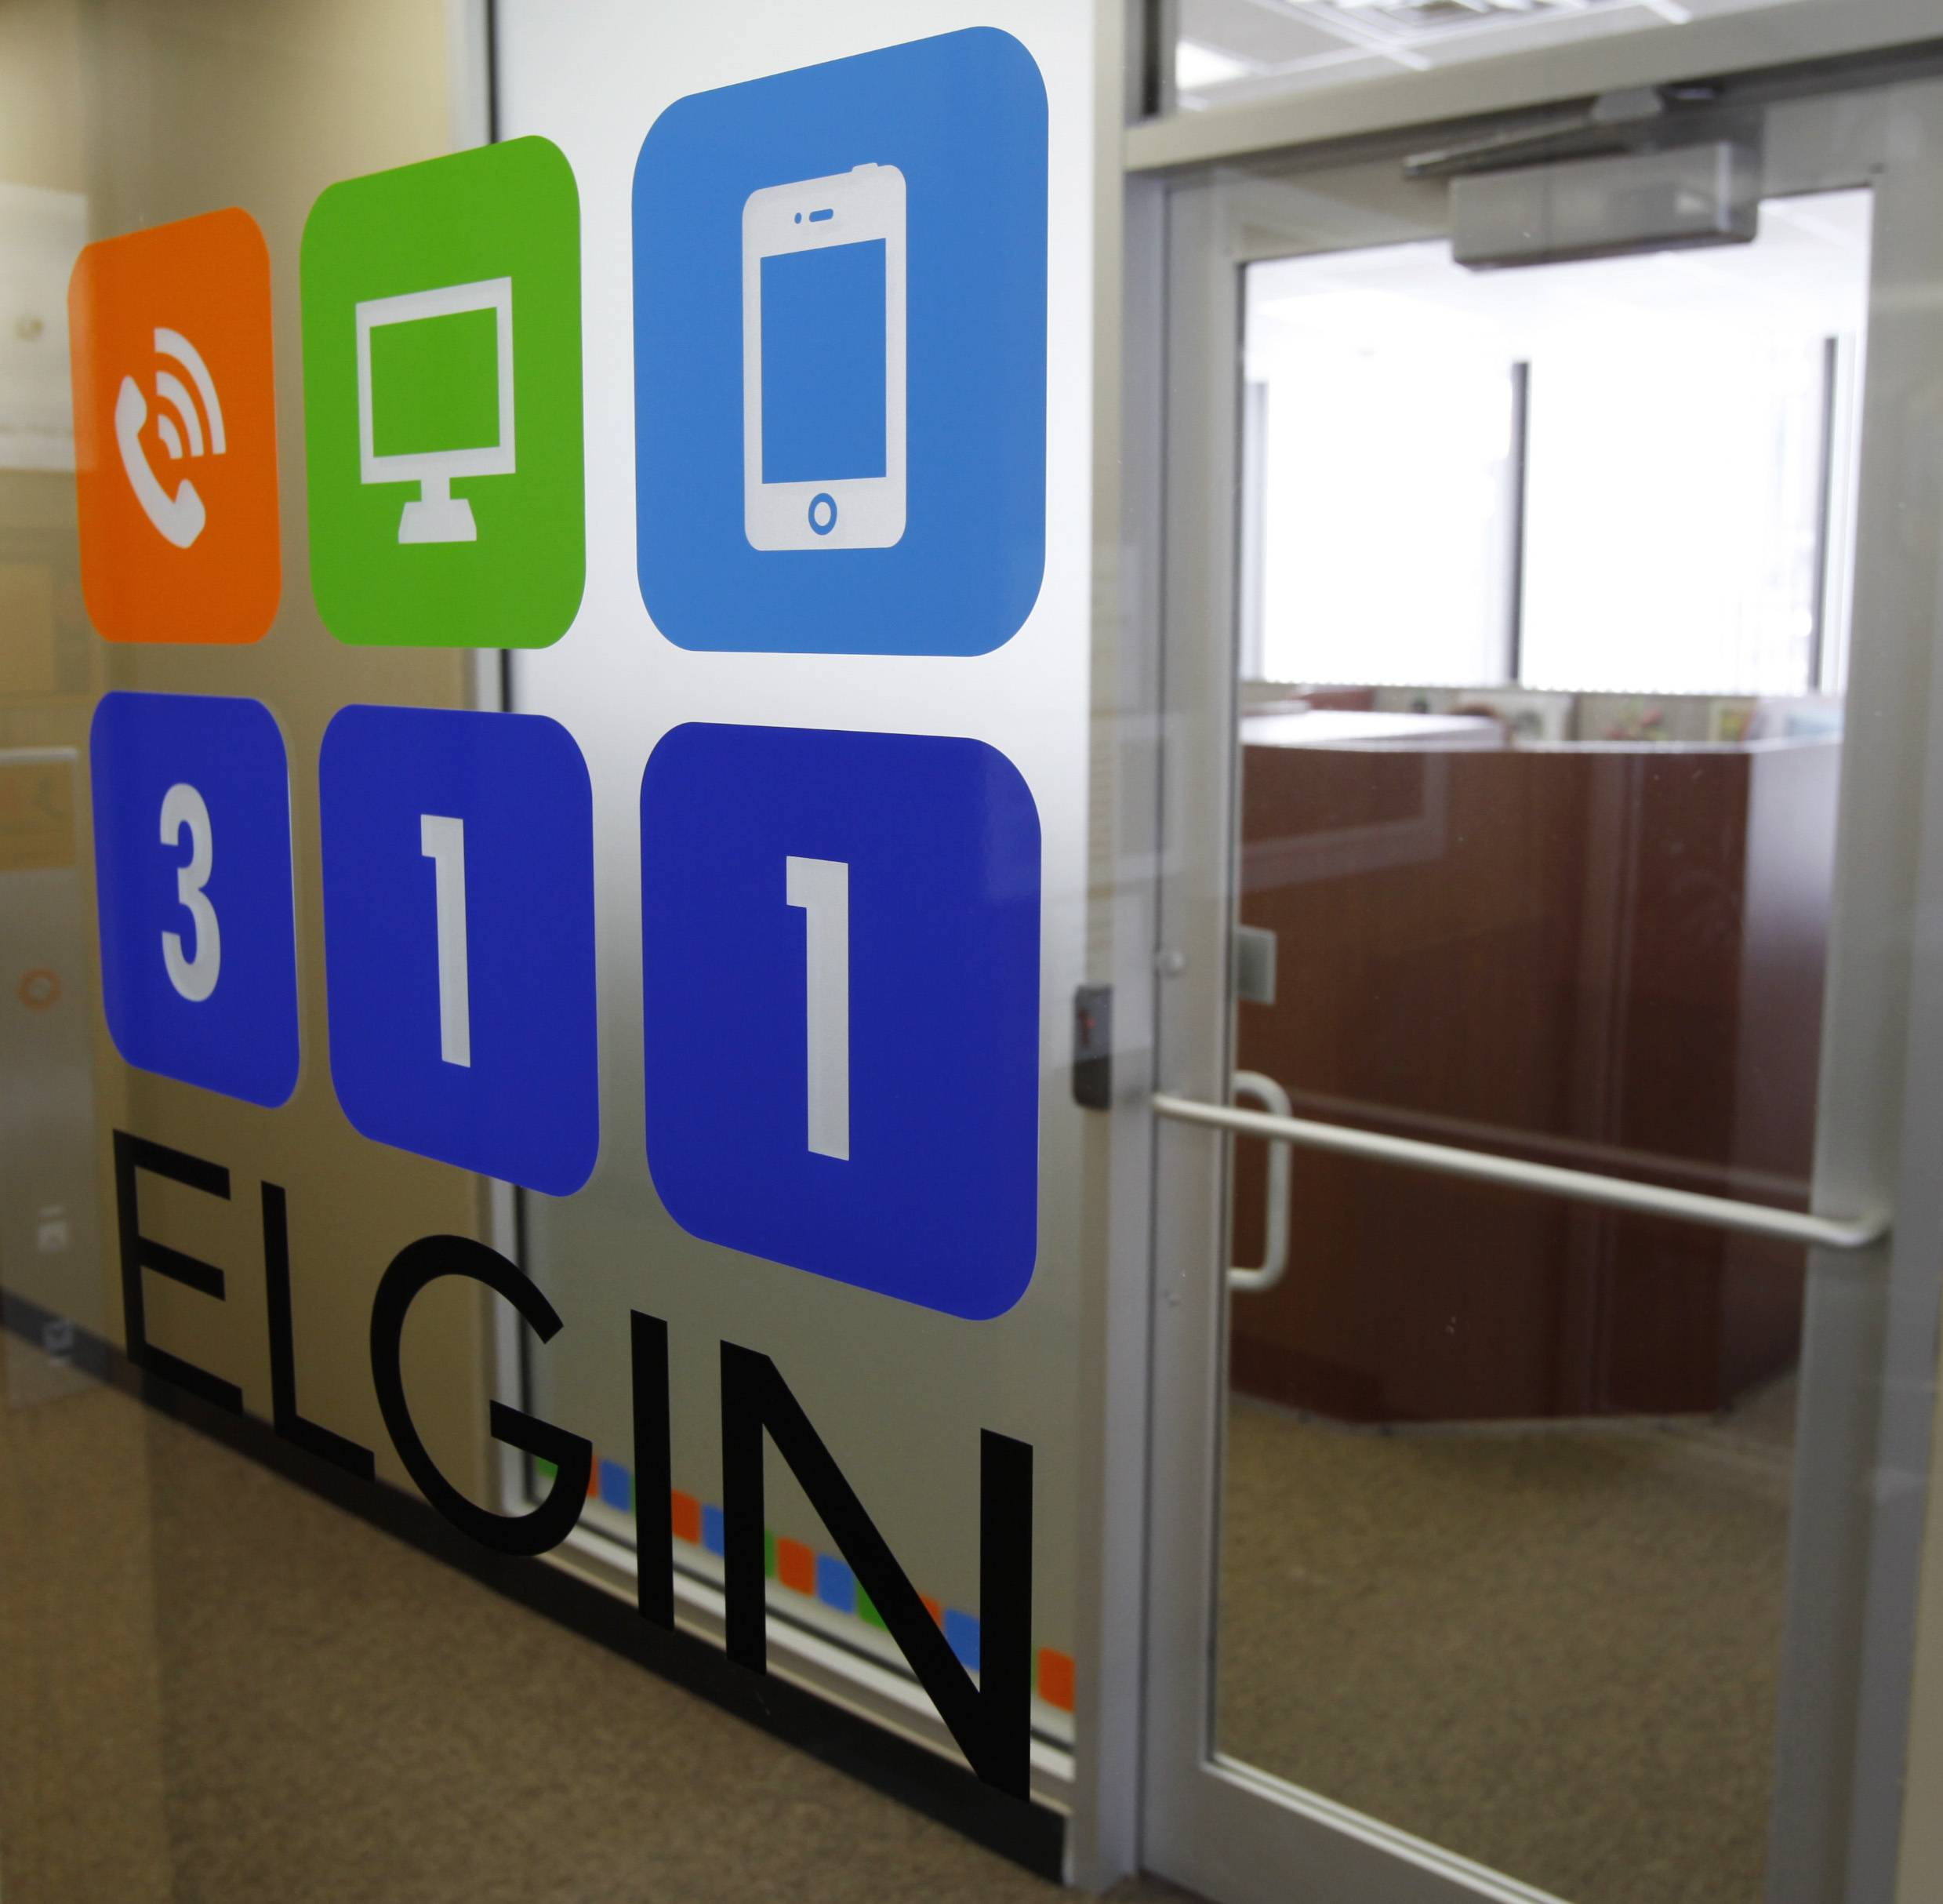 The 311 Contact Center in Elgin was rolled out in January, and is part of a new system that integrates data across departments, allowing greater efficiency and savings, Elgin officials said.